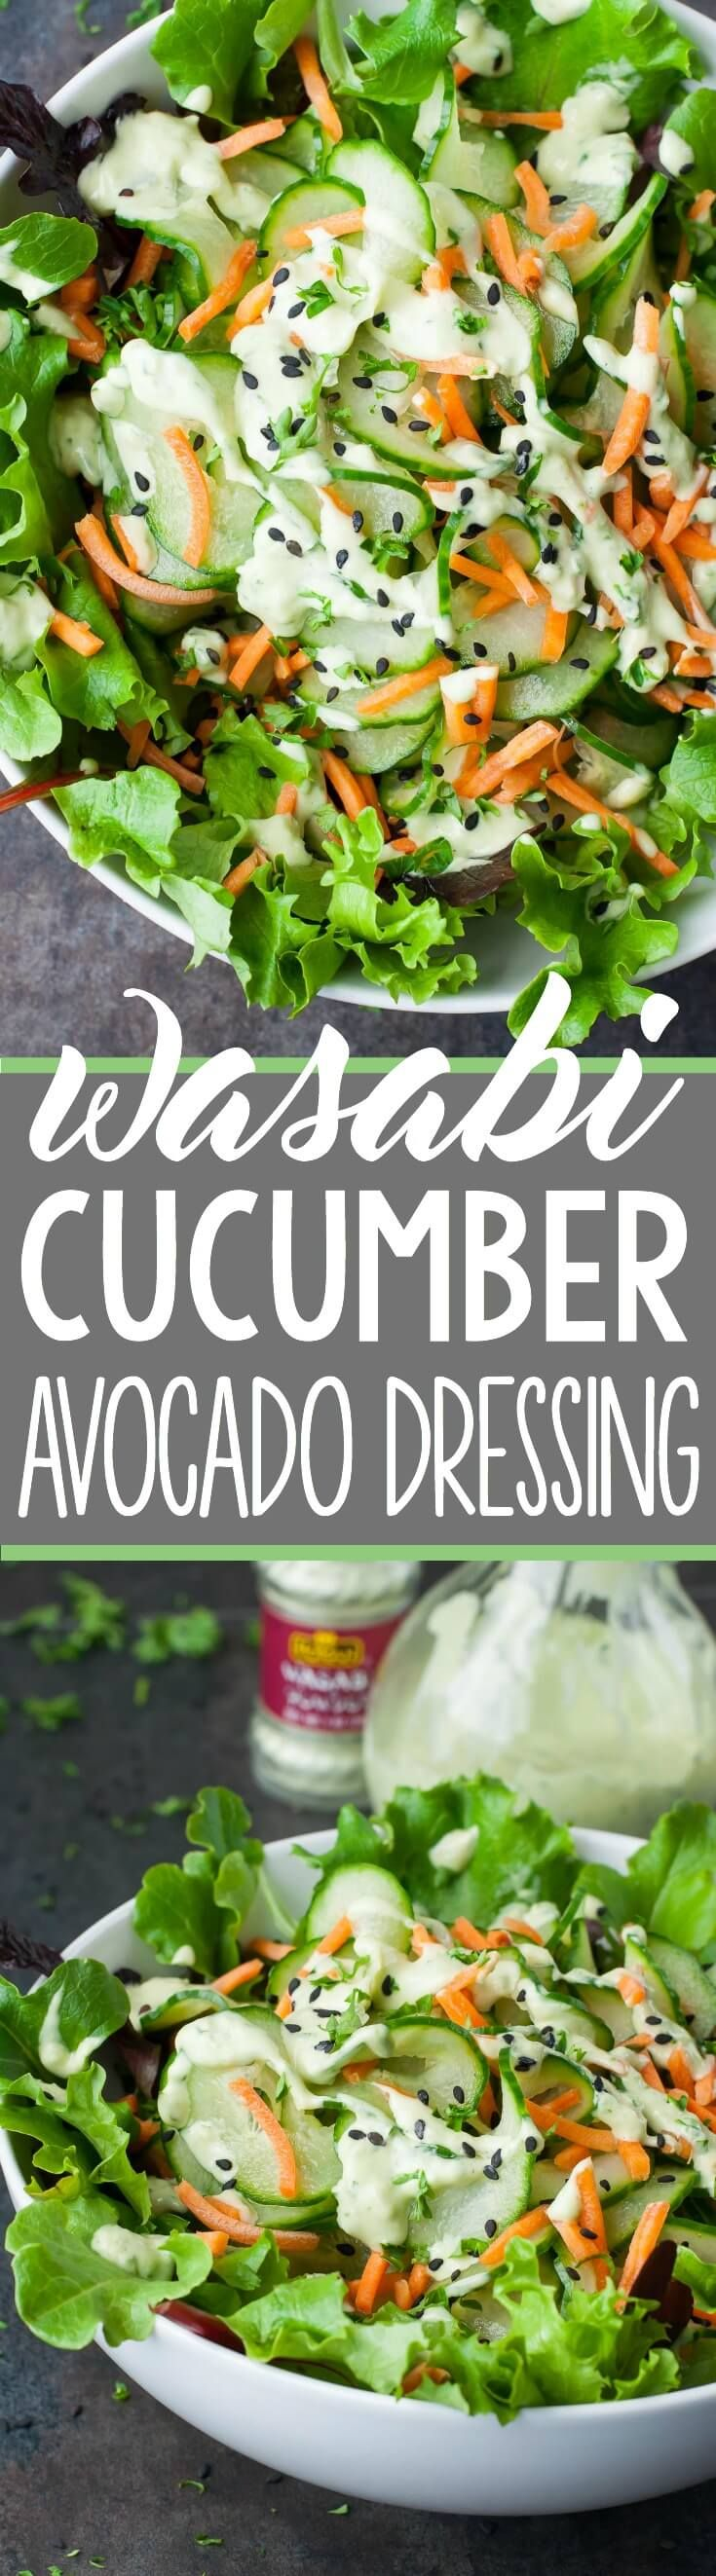 Let's shake up those salads! This homemade Wasabi Cucumber Avocado dressing is super creamy and full of flavor! #vegan #paleo